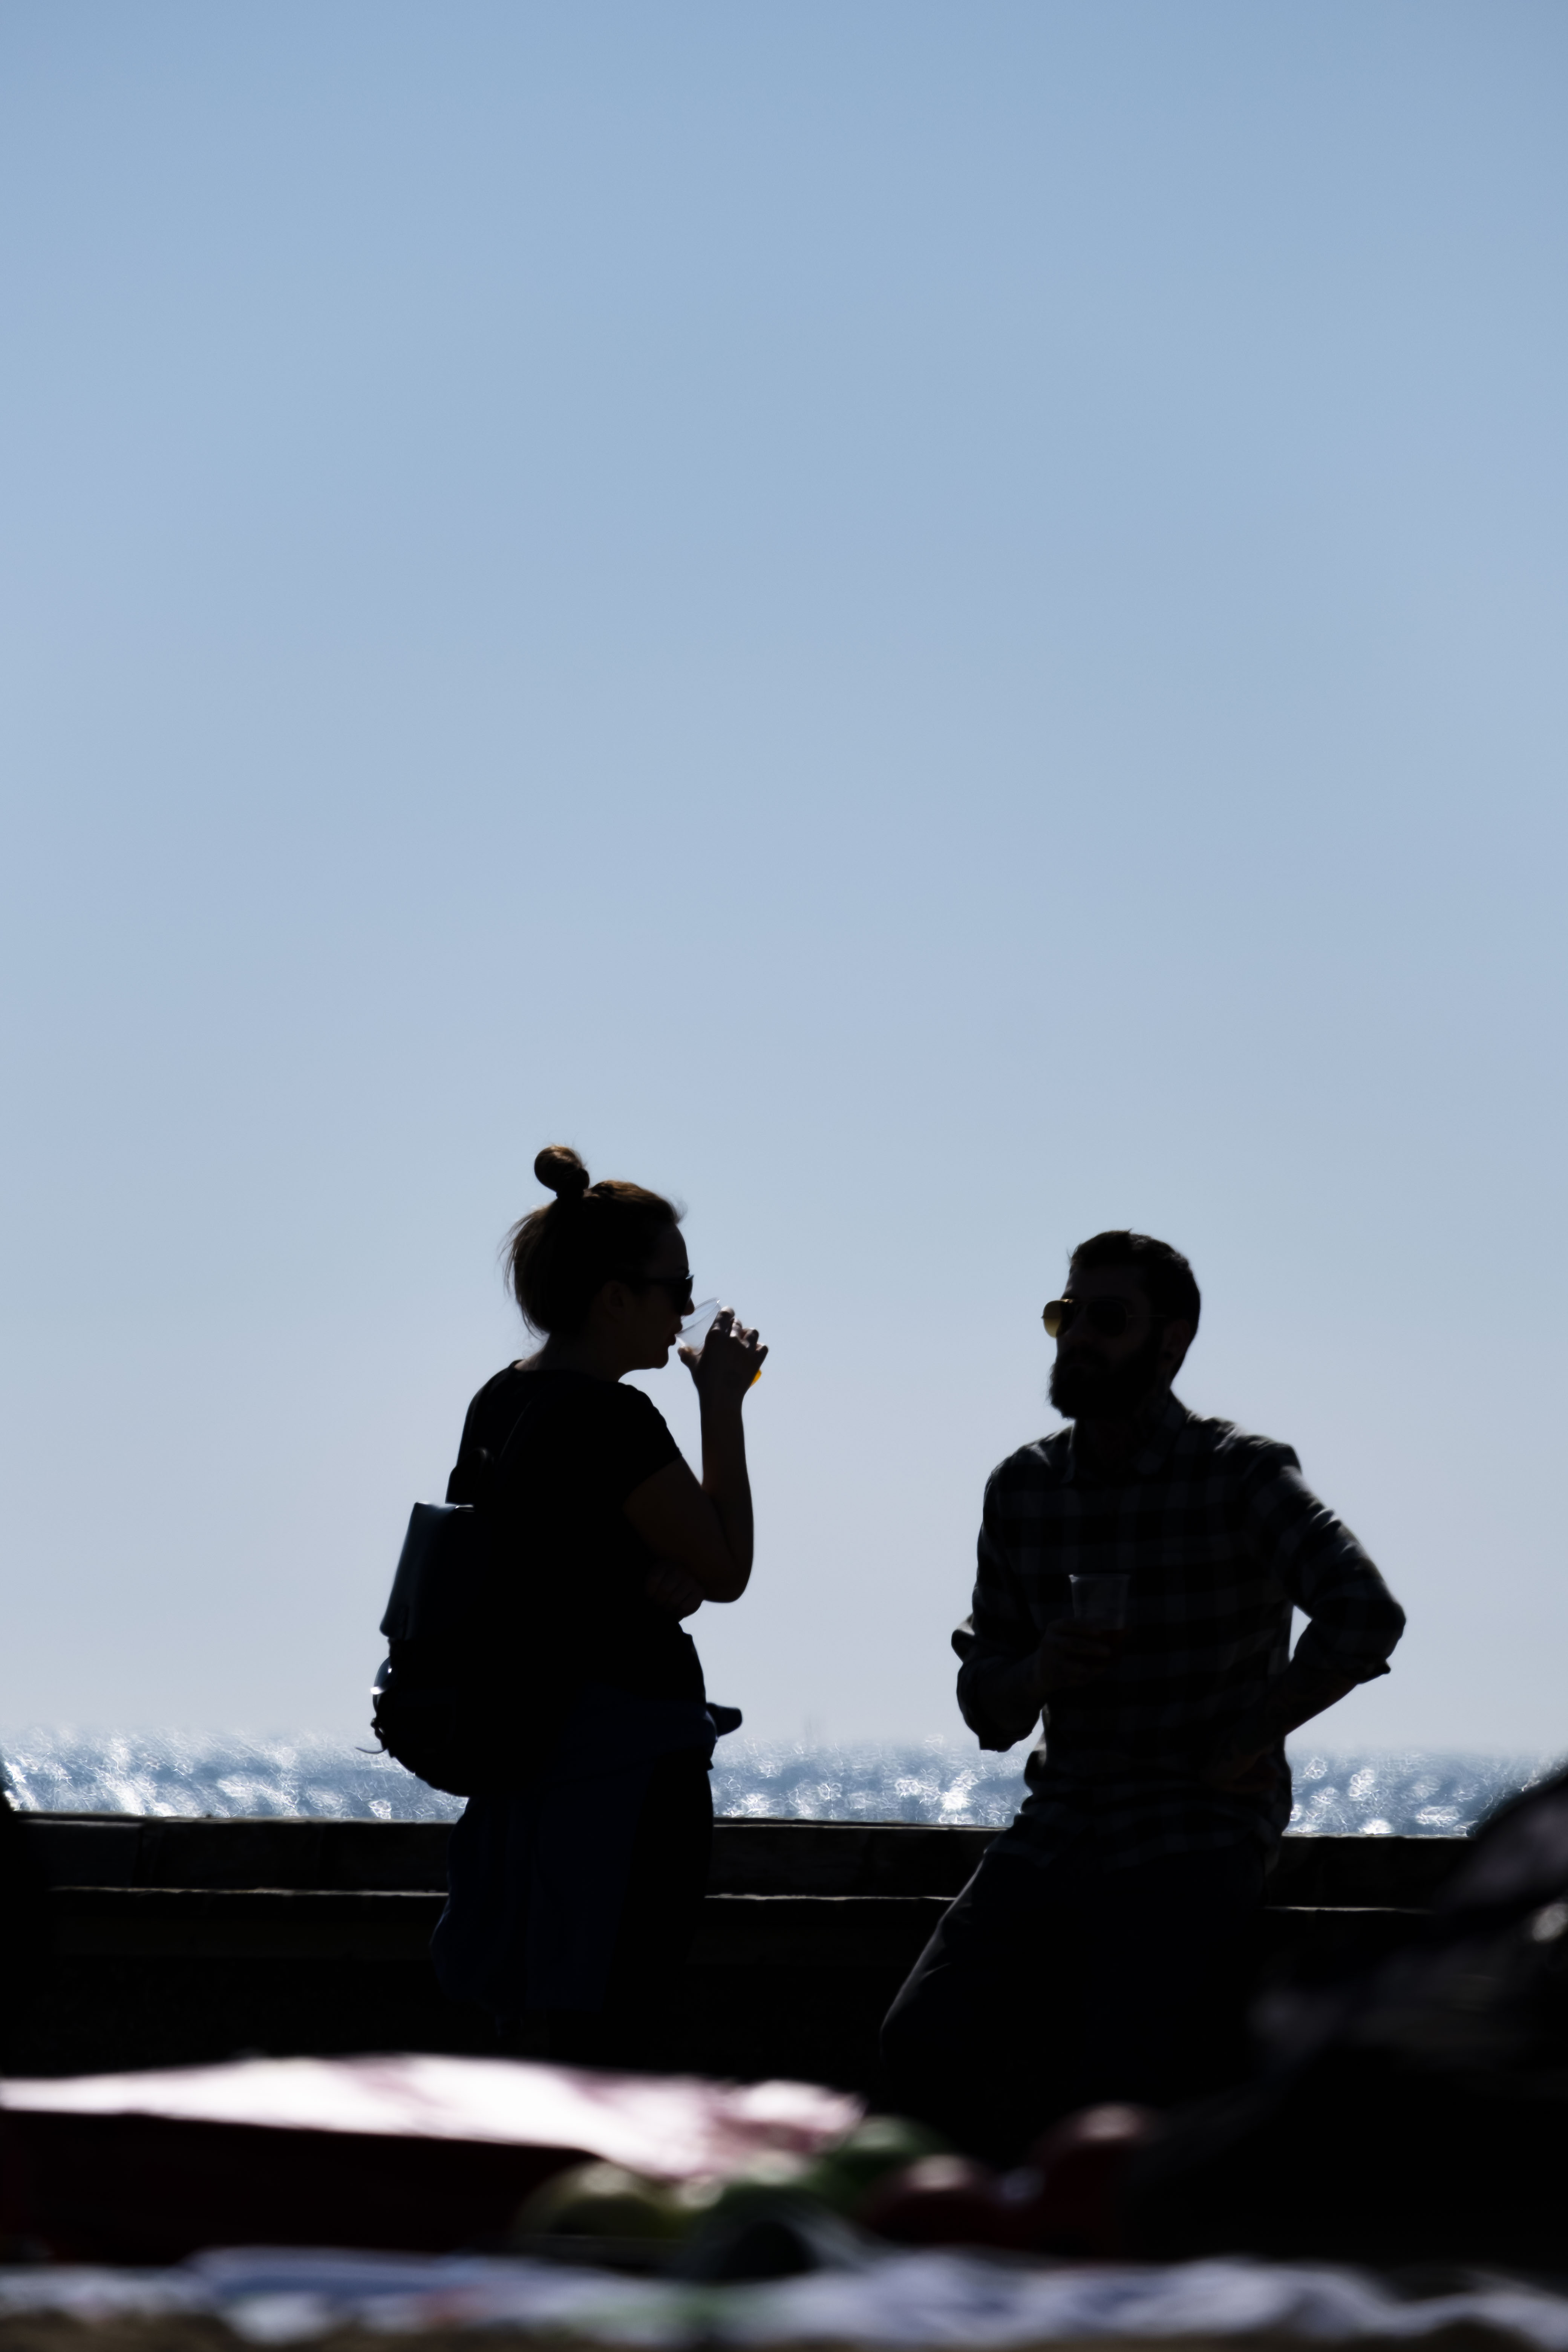 Silhouette Photography of Man and Woman Standing